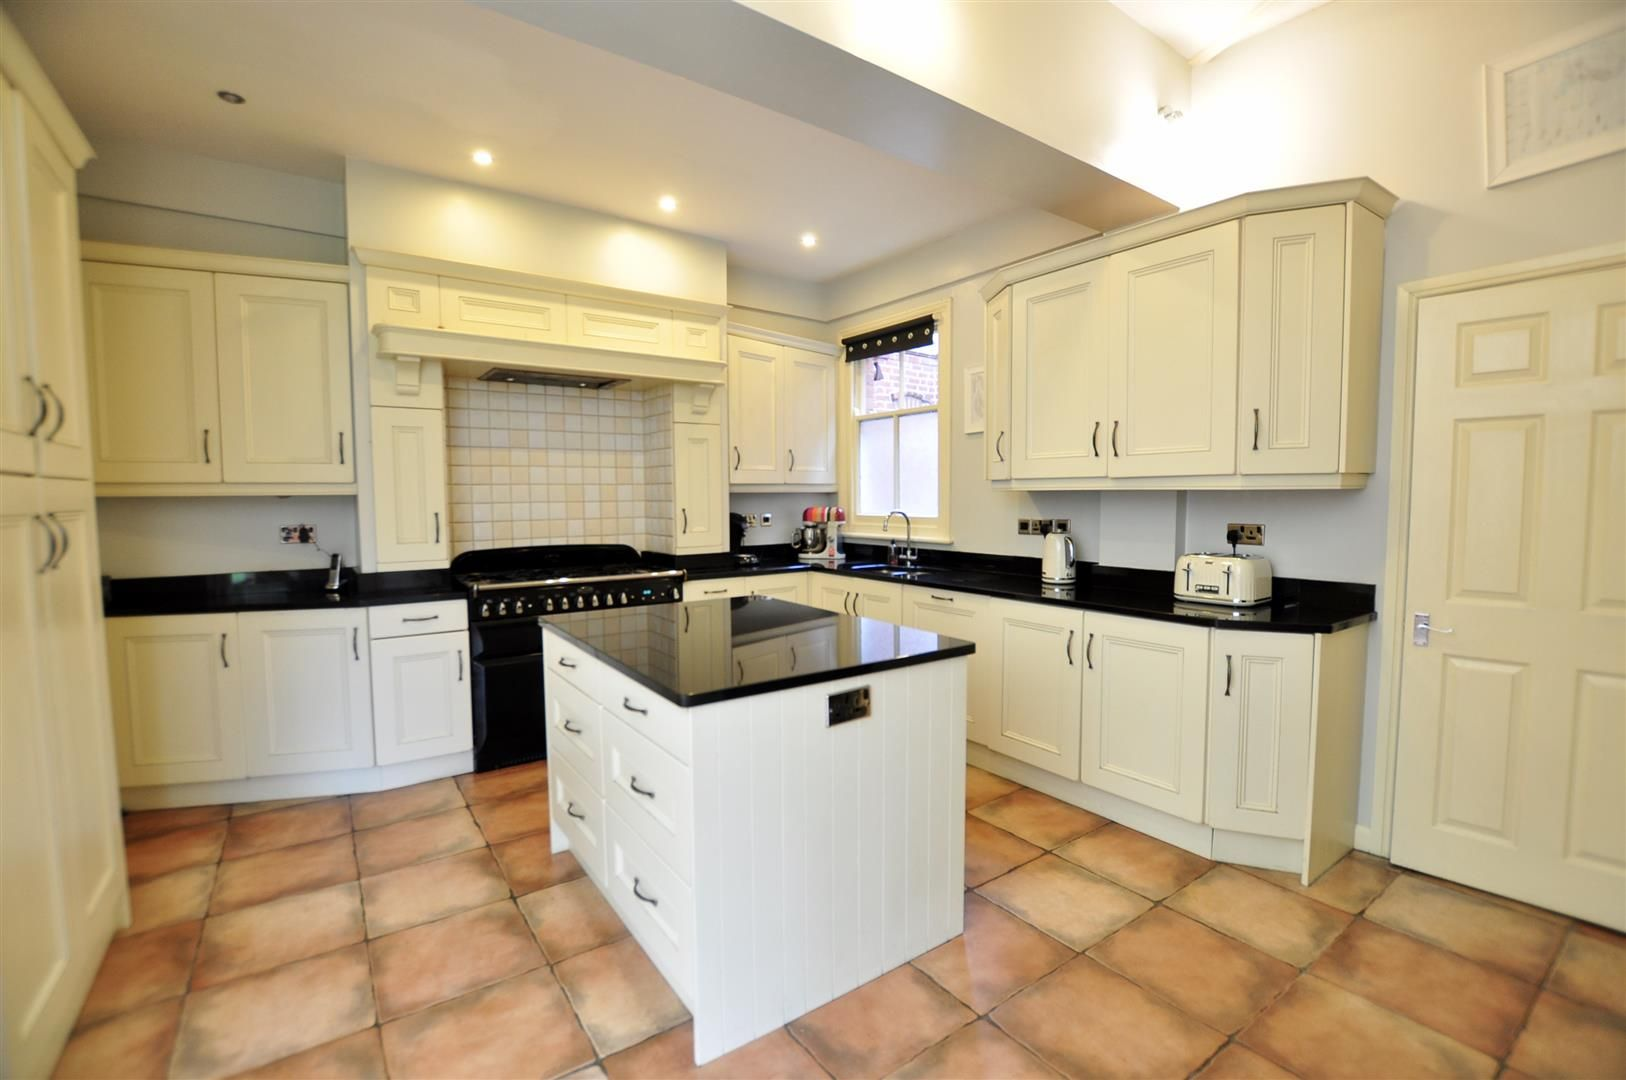 5 bed detached for sale in Hagley 10